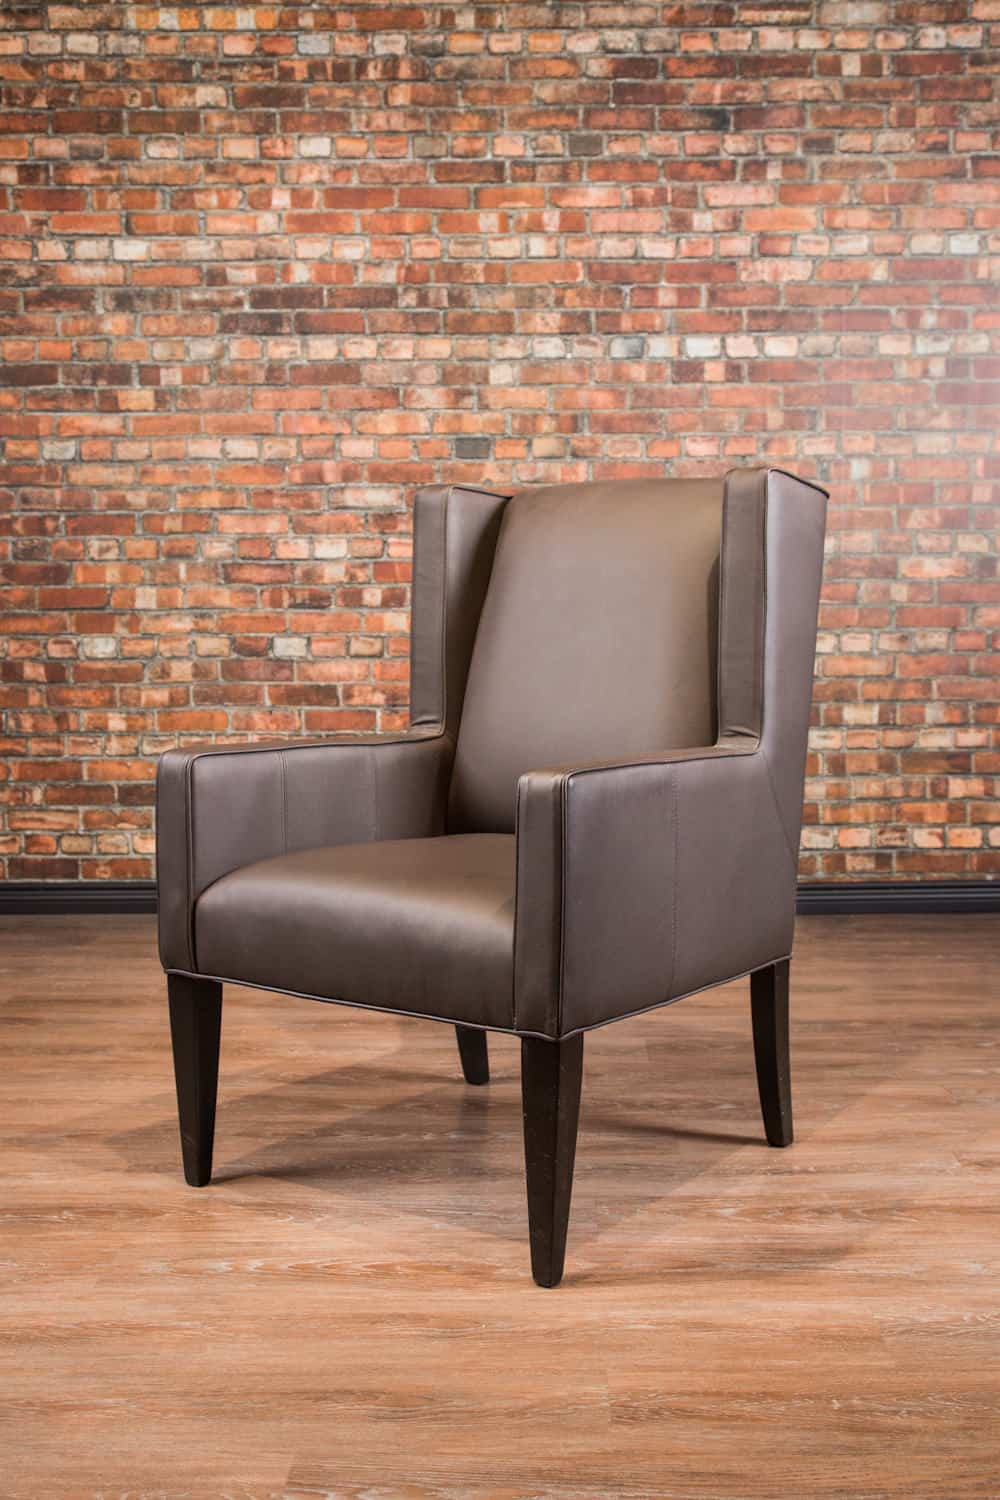 Square Accent Chair Canada S Boss Leather Sofas And